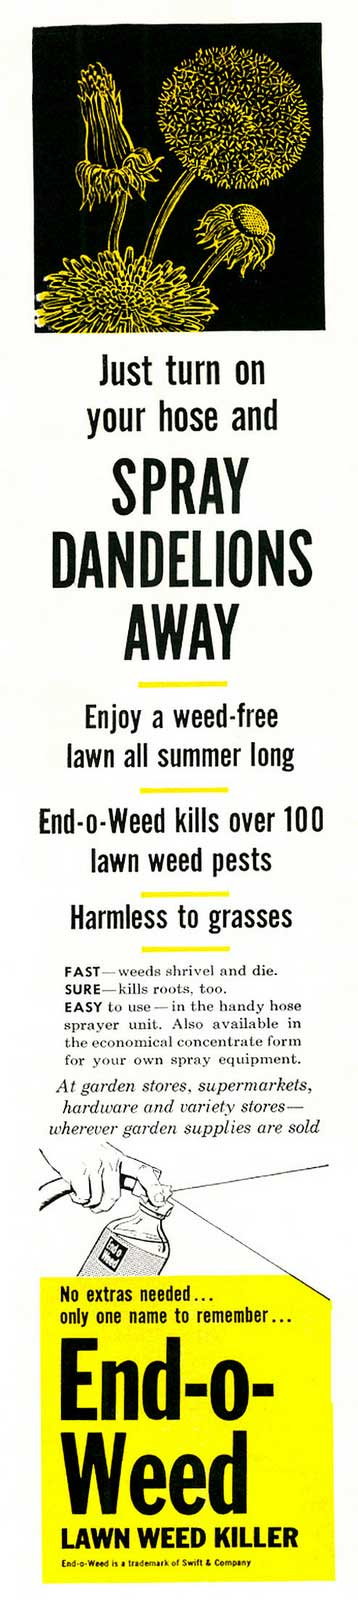 1961-era ad for residential lawn weedkiller | Photo: Classic Film, some rights reserved